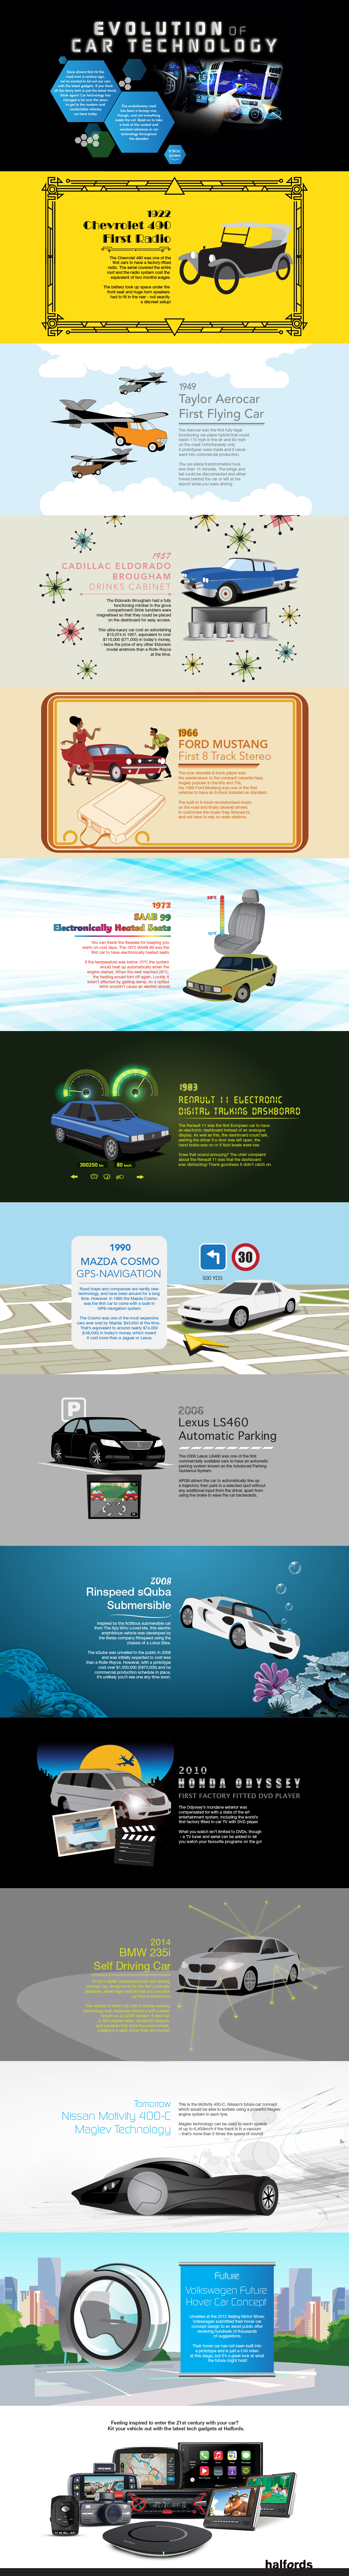 In-car technology through the years